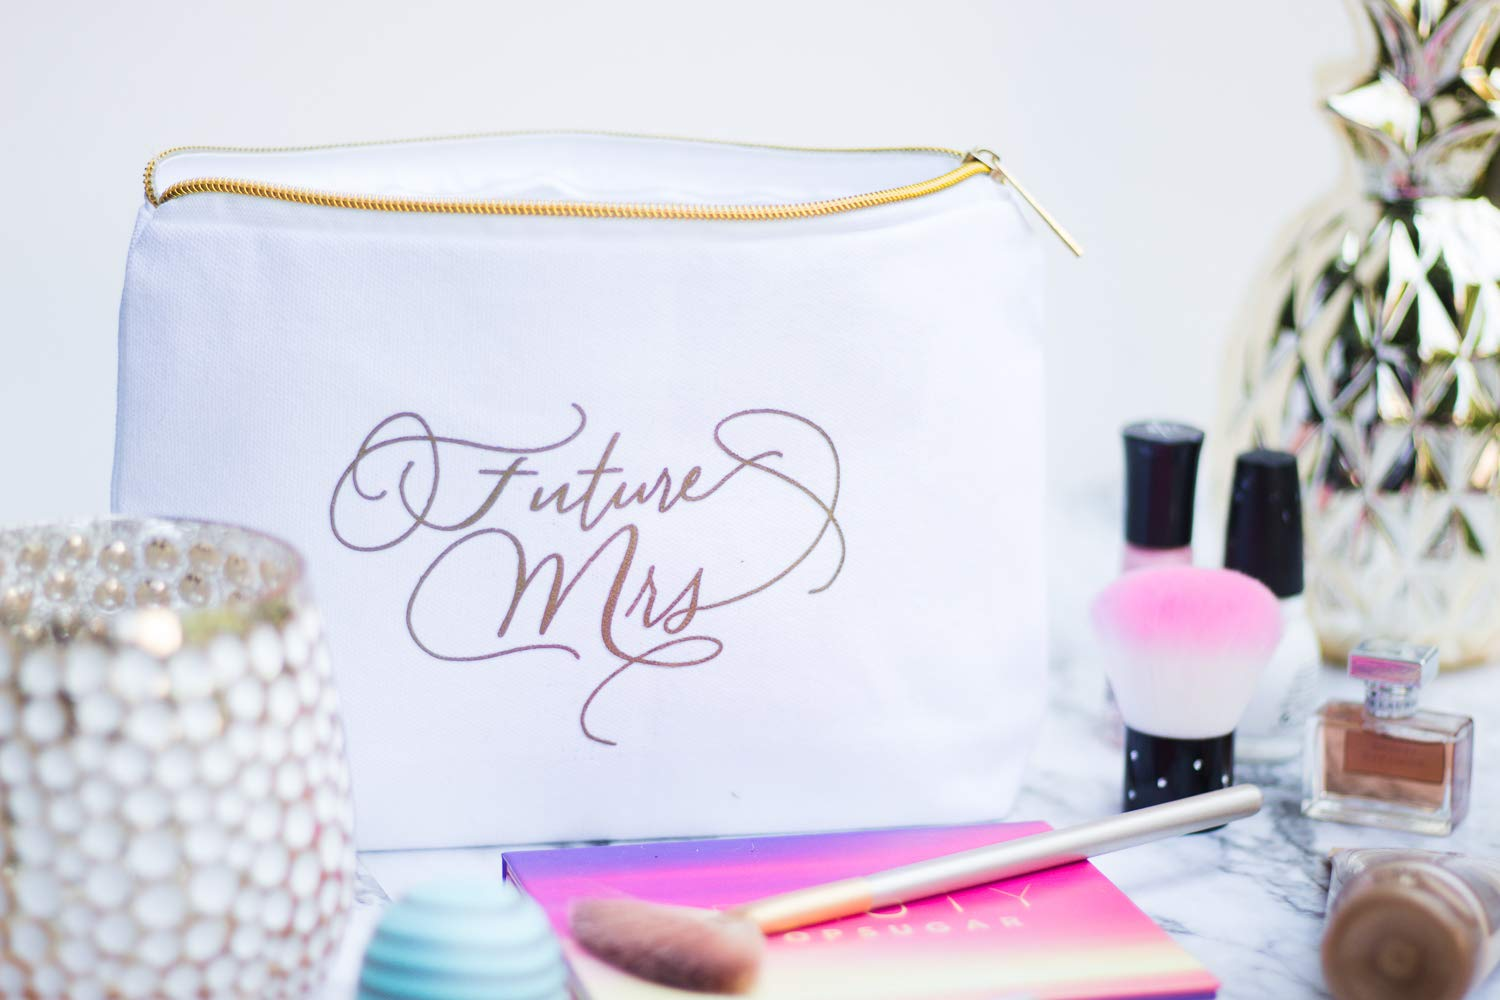 Future Mrs. Makeup Bag for Weddings, Bridal Showers, and Bachelorette Parties - Gold